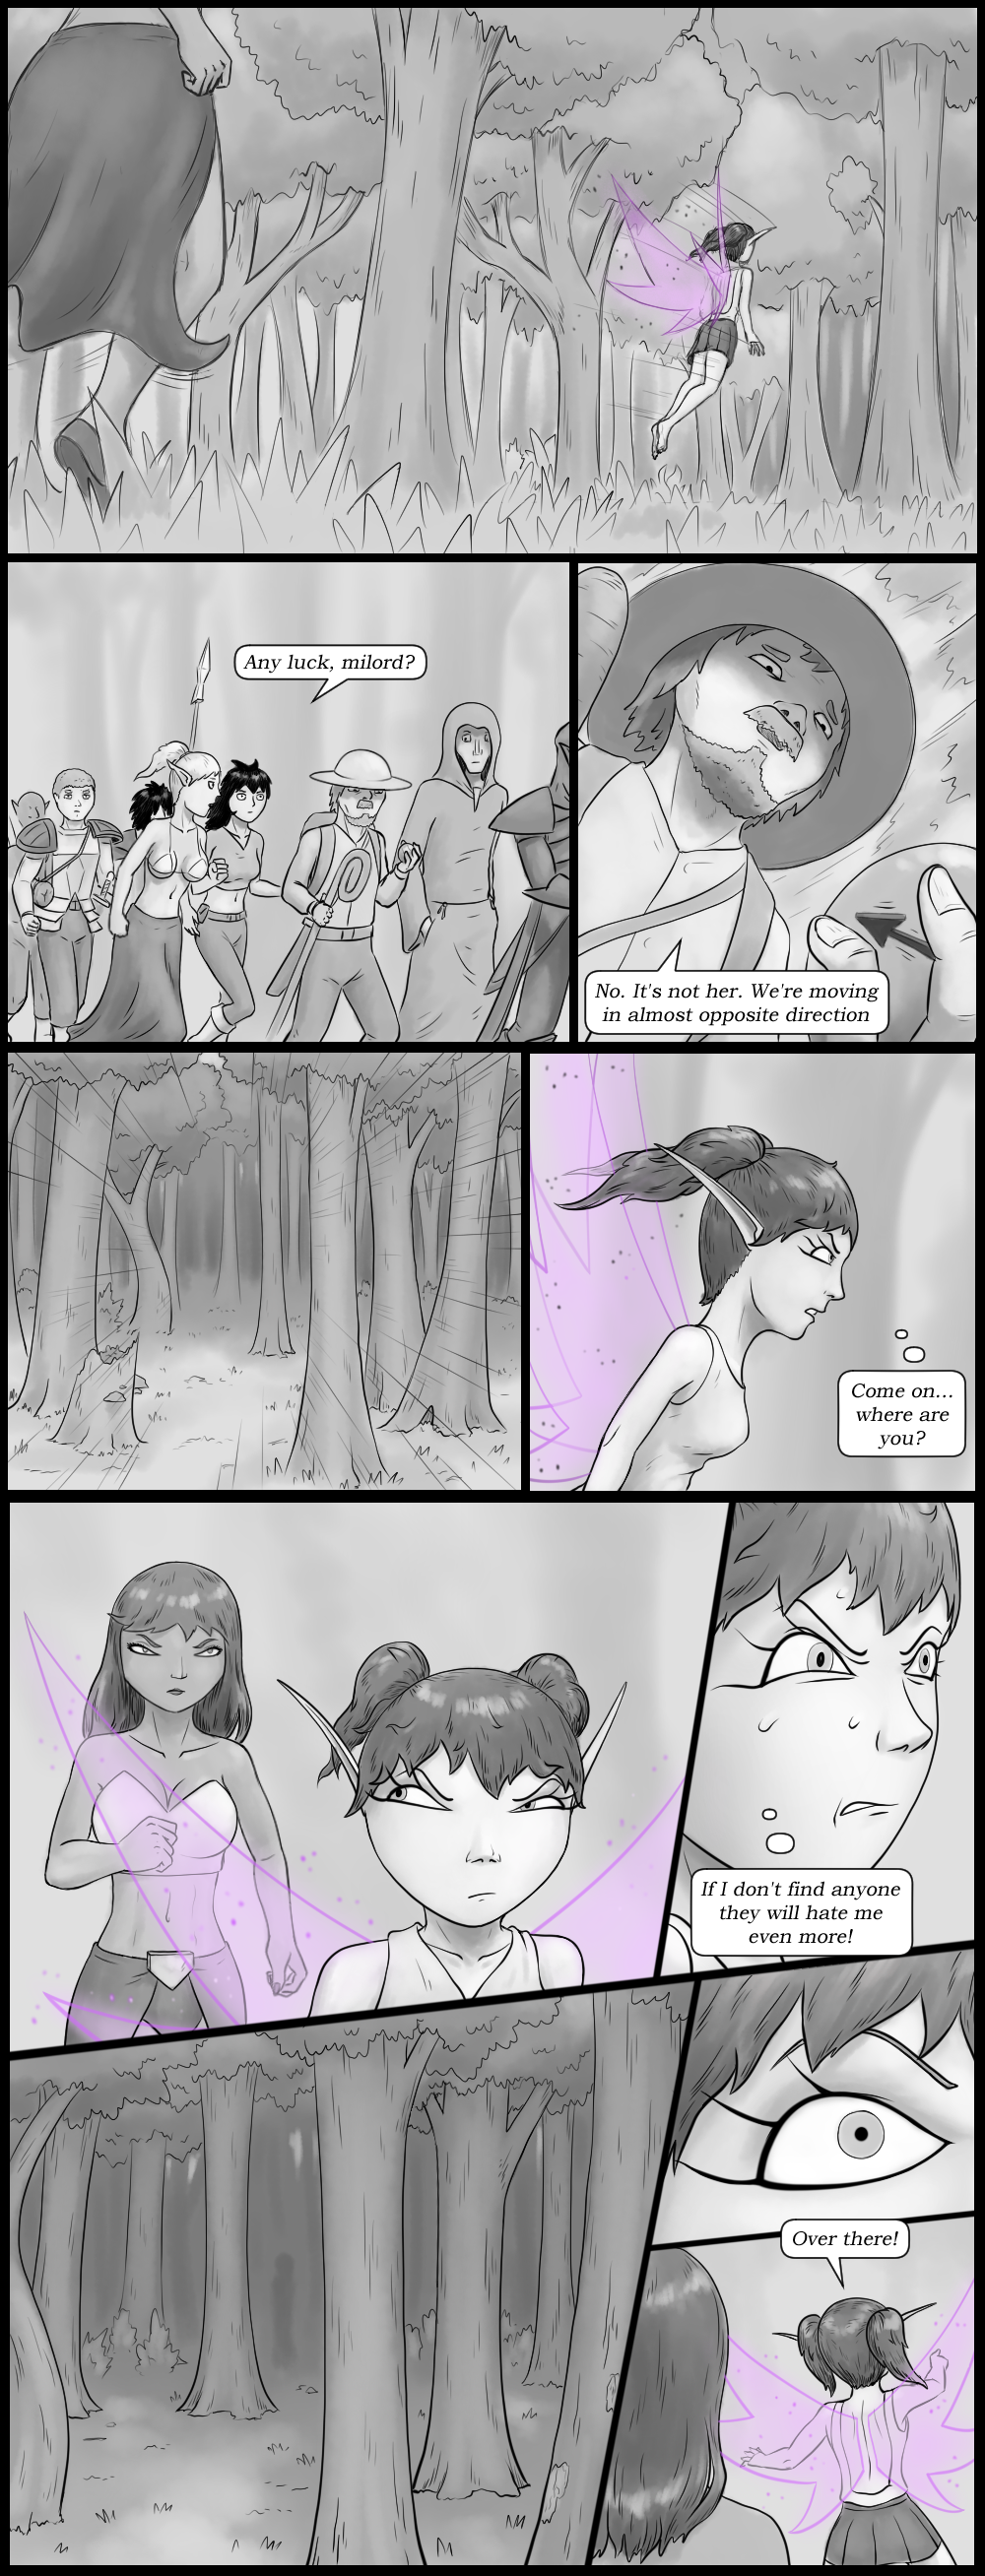 Page 26 - Follow the fairy